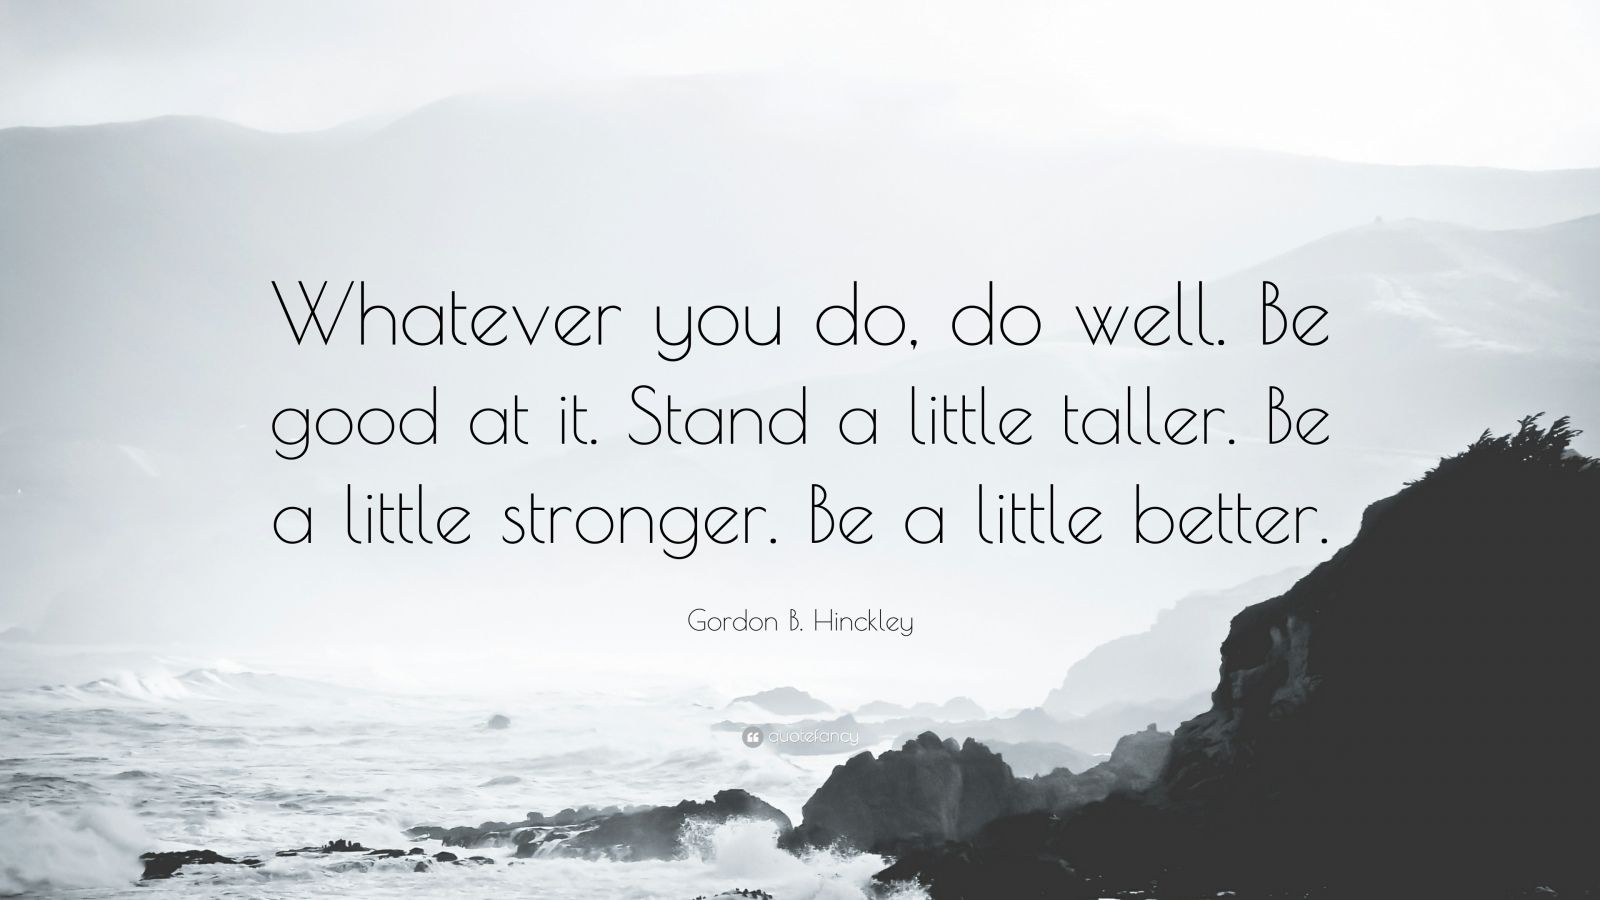 """Gordon B. Hinckley Quote: """"Whatever you do, do well. Be good at it. Stand a little taller. Be a little stronger. Be a little better."""""""